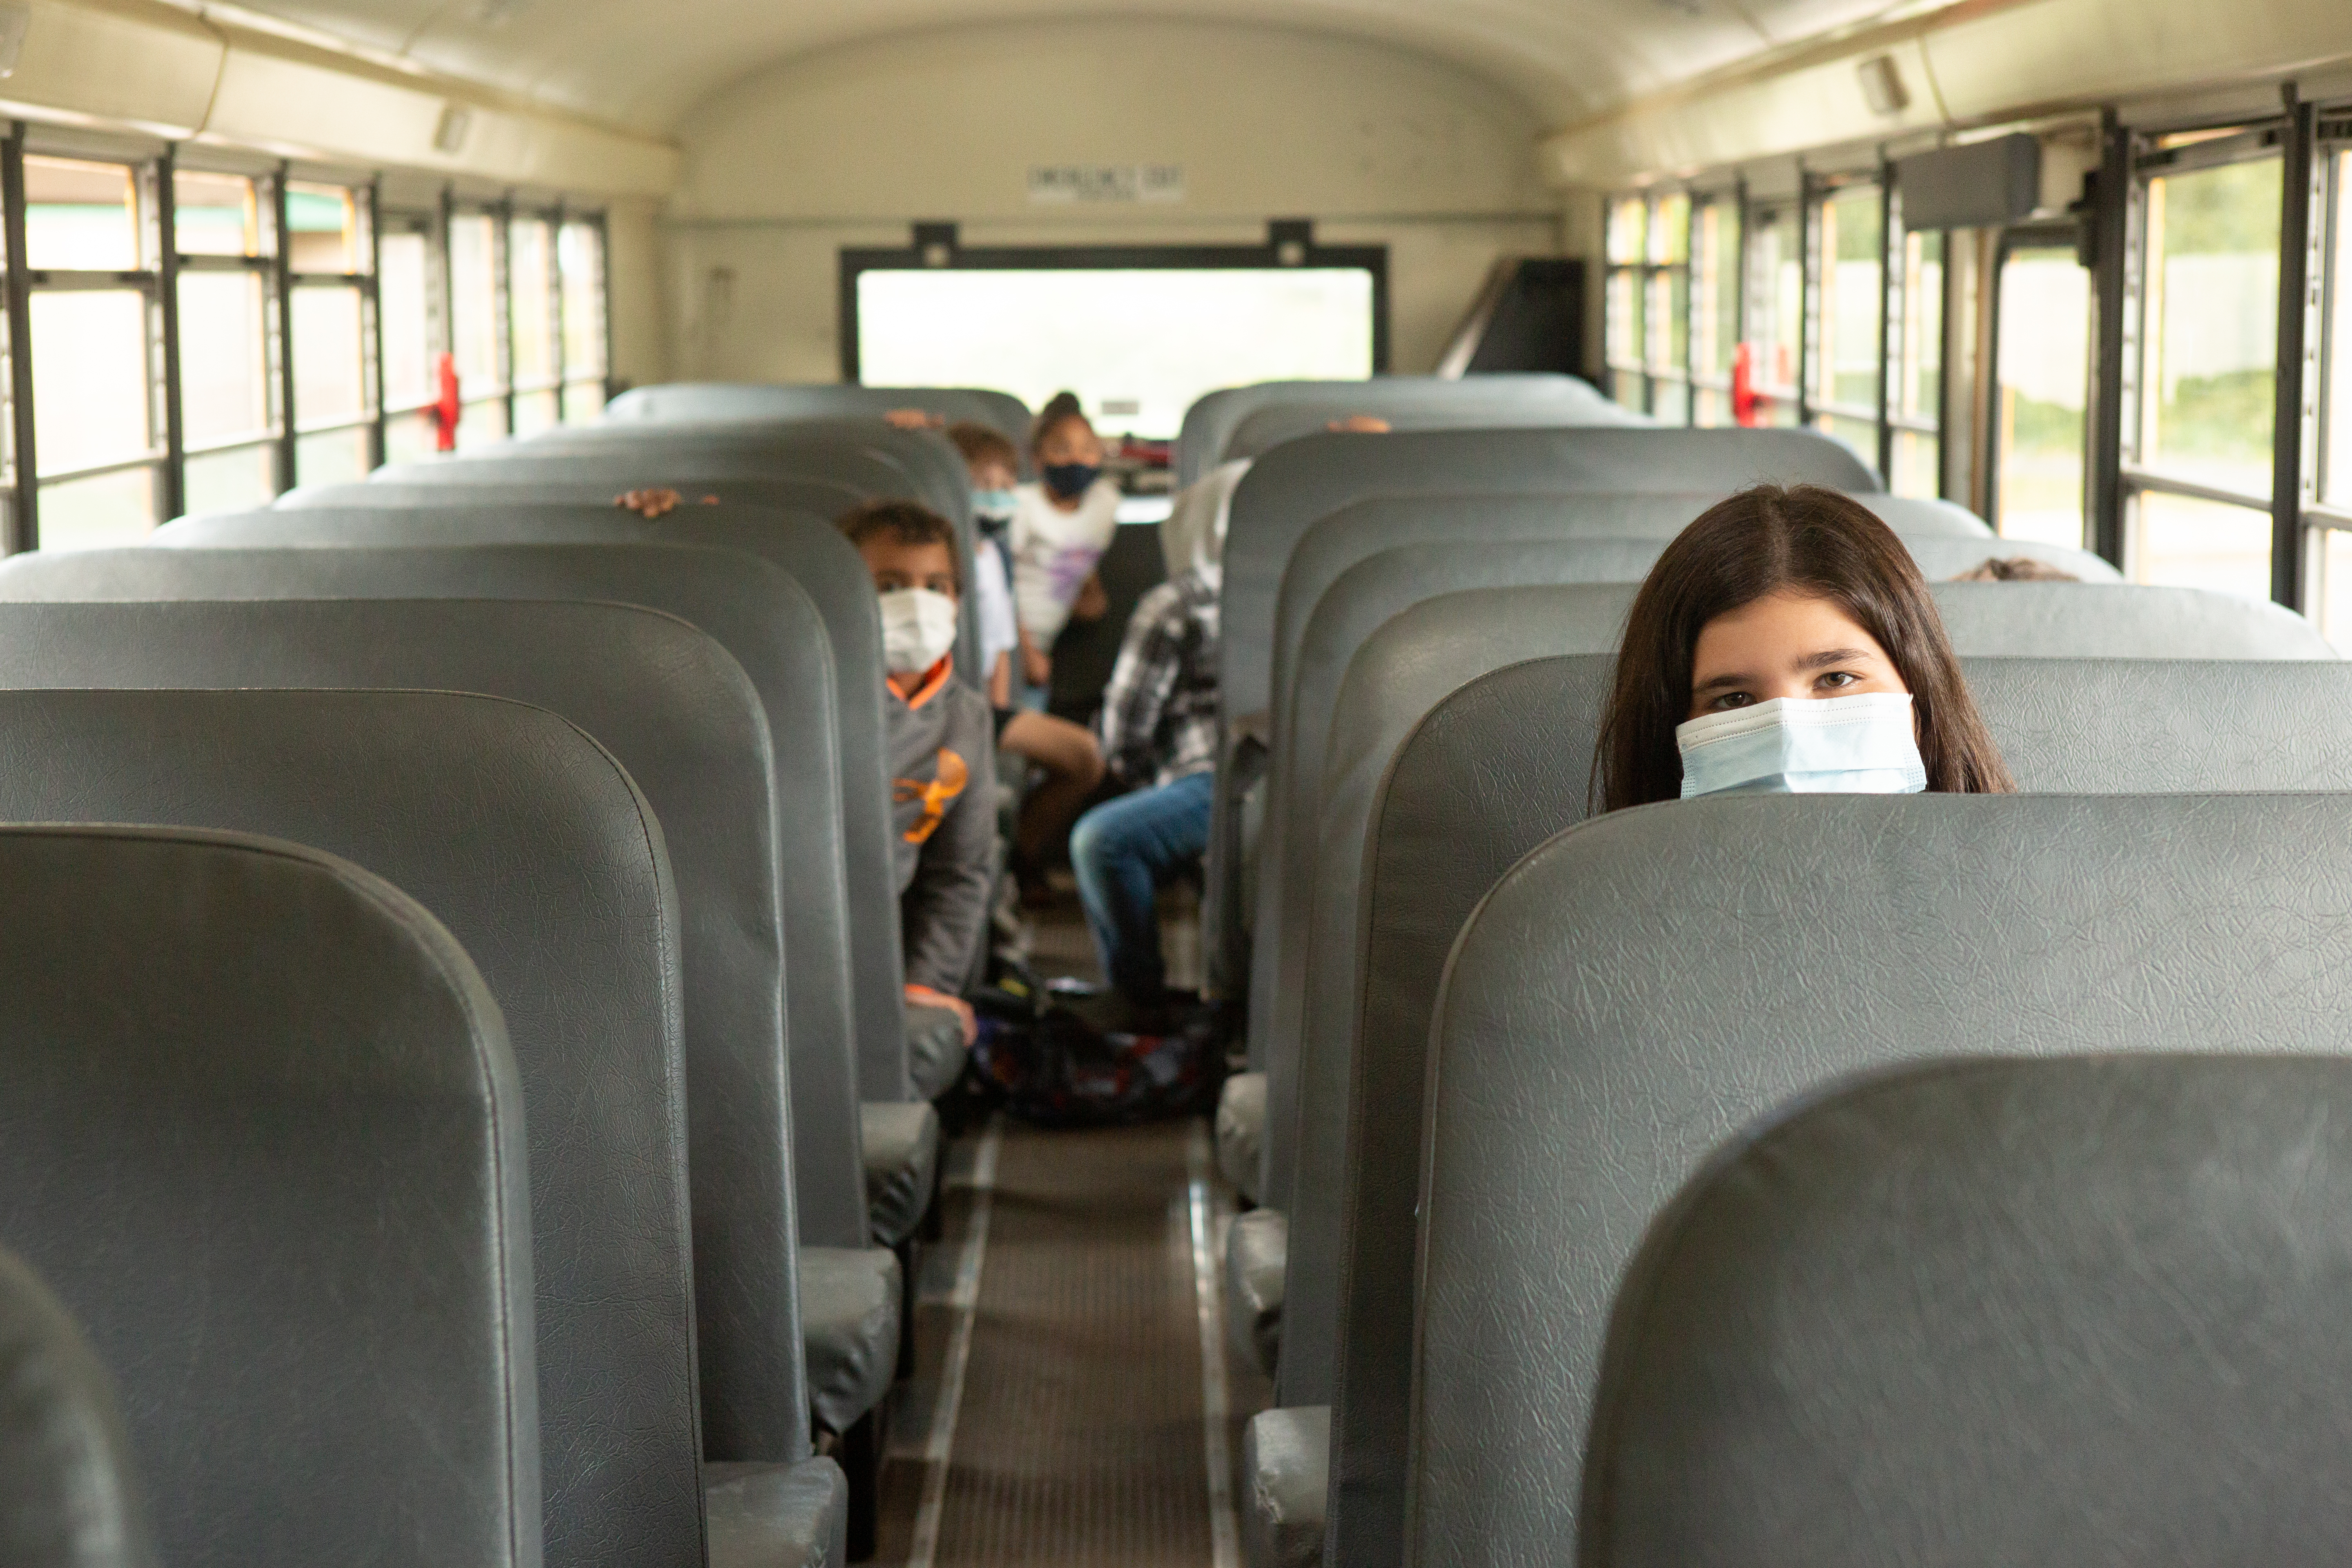 Several students, wearing blue face masks, sit on a bus with gray seats waiting as students wait to depart from school.